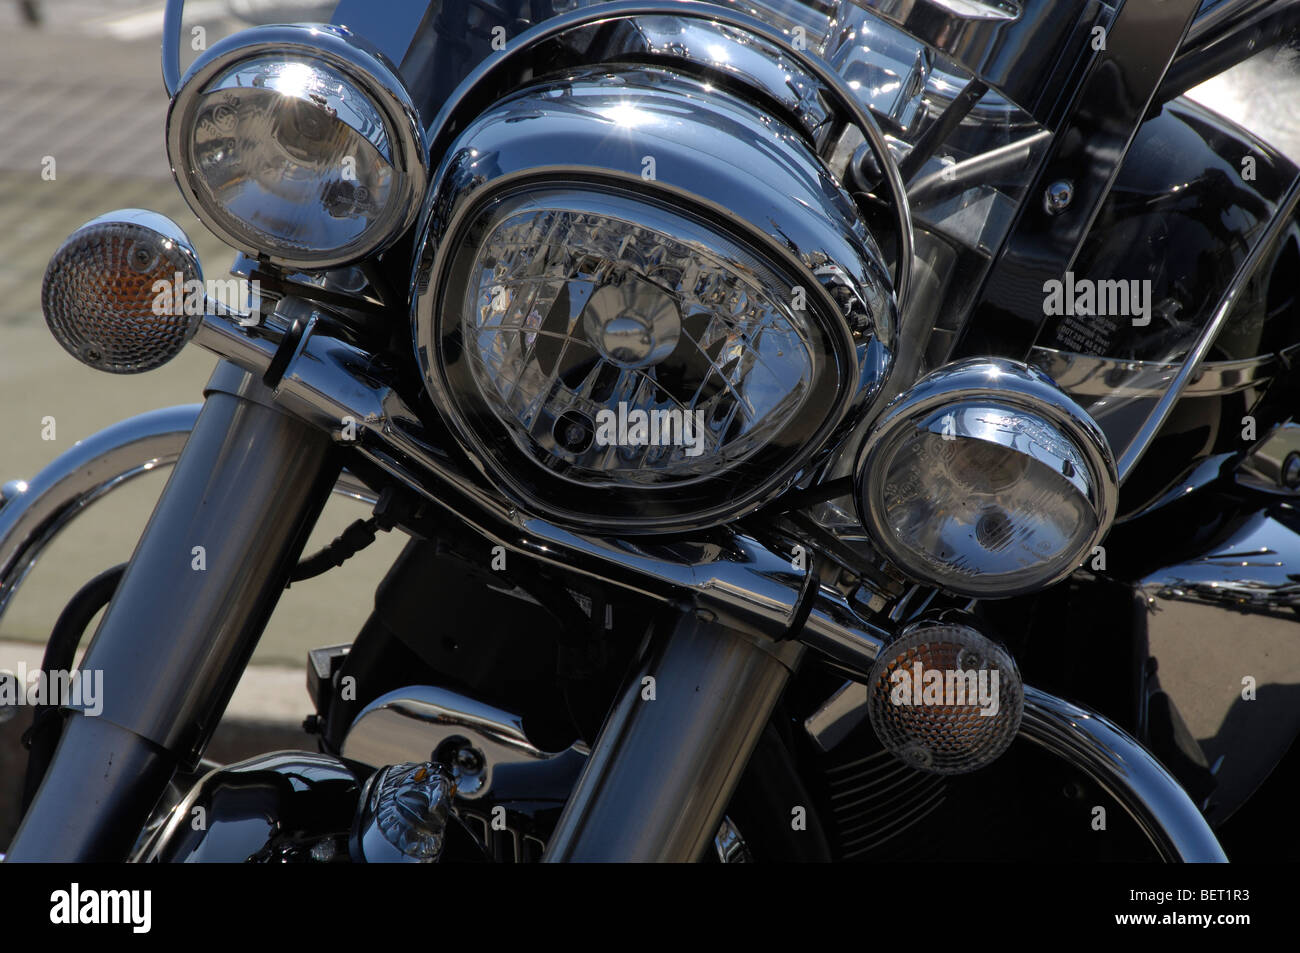 Details and parts of motos - Stock Image